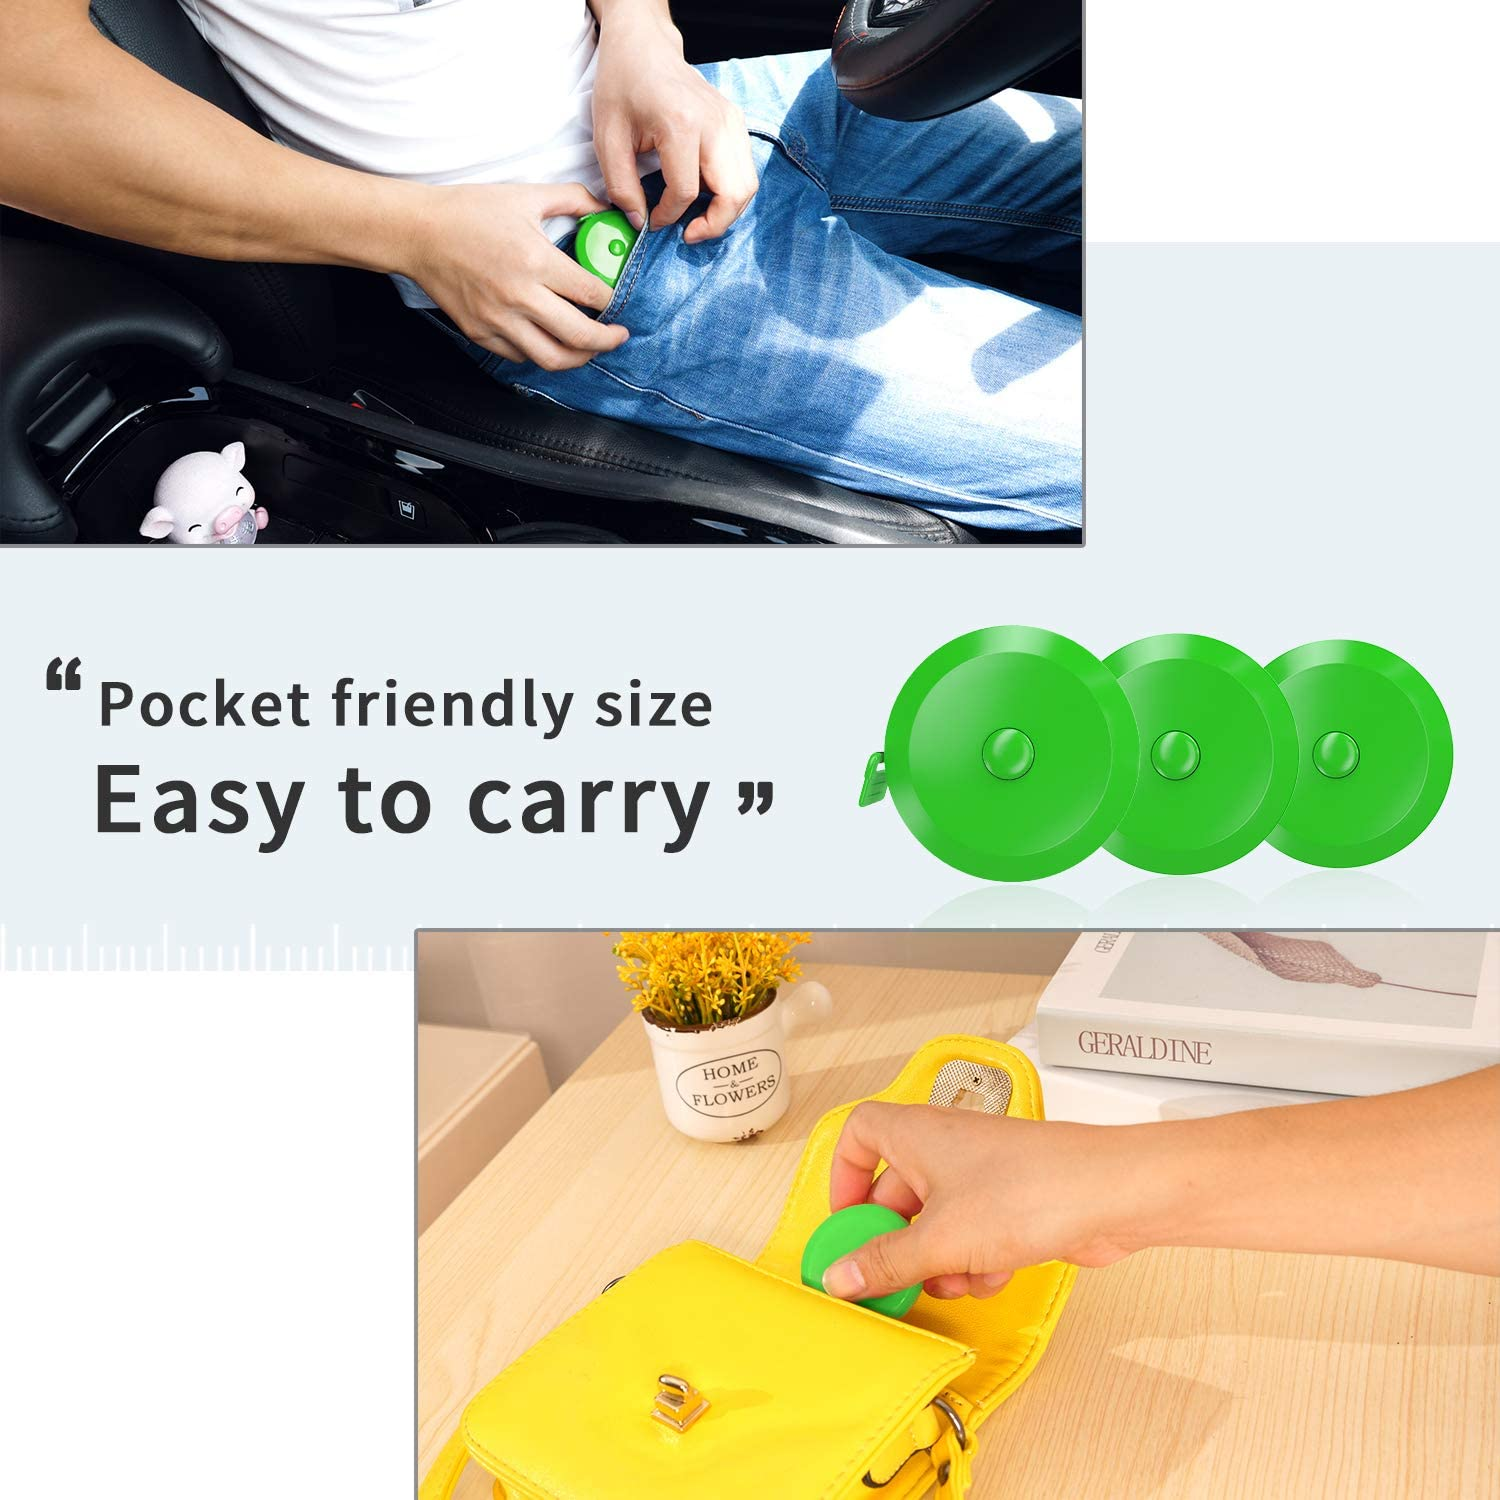 DiCUNO 60-Inch 1.5 Meter Soft and Retractable Tape Body Tailor Sewing Craft Cloth Dieting Measuring Tape 3 Pcs of Yellow with Soft Tape